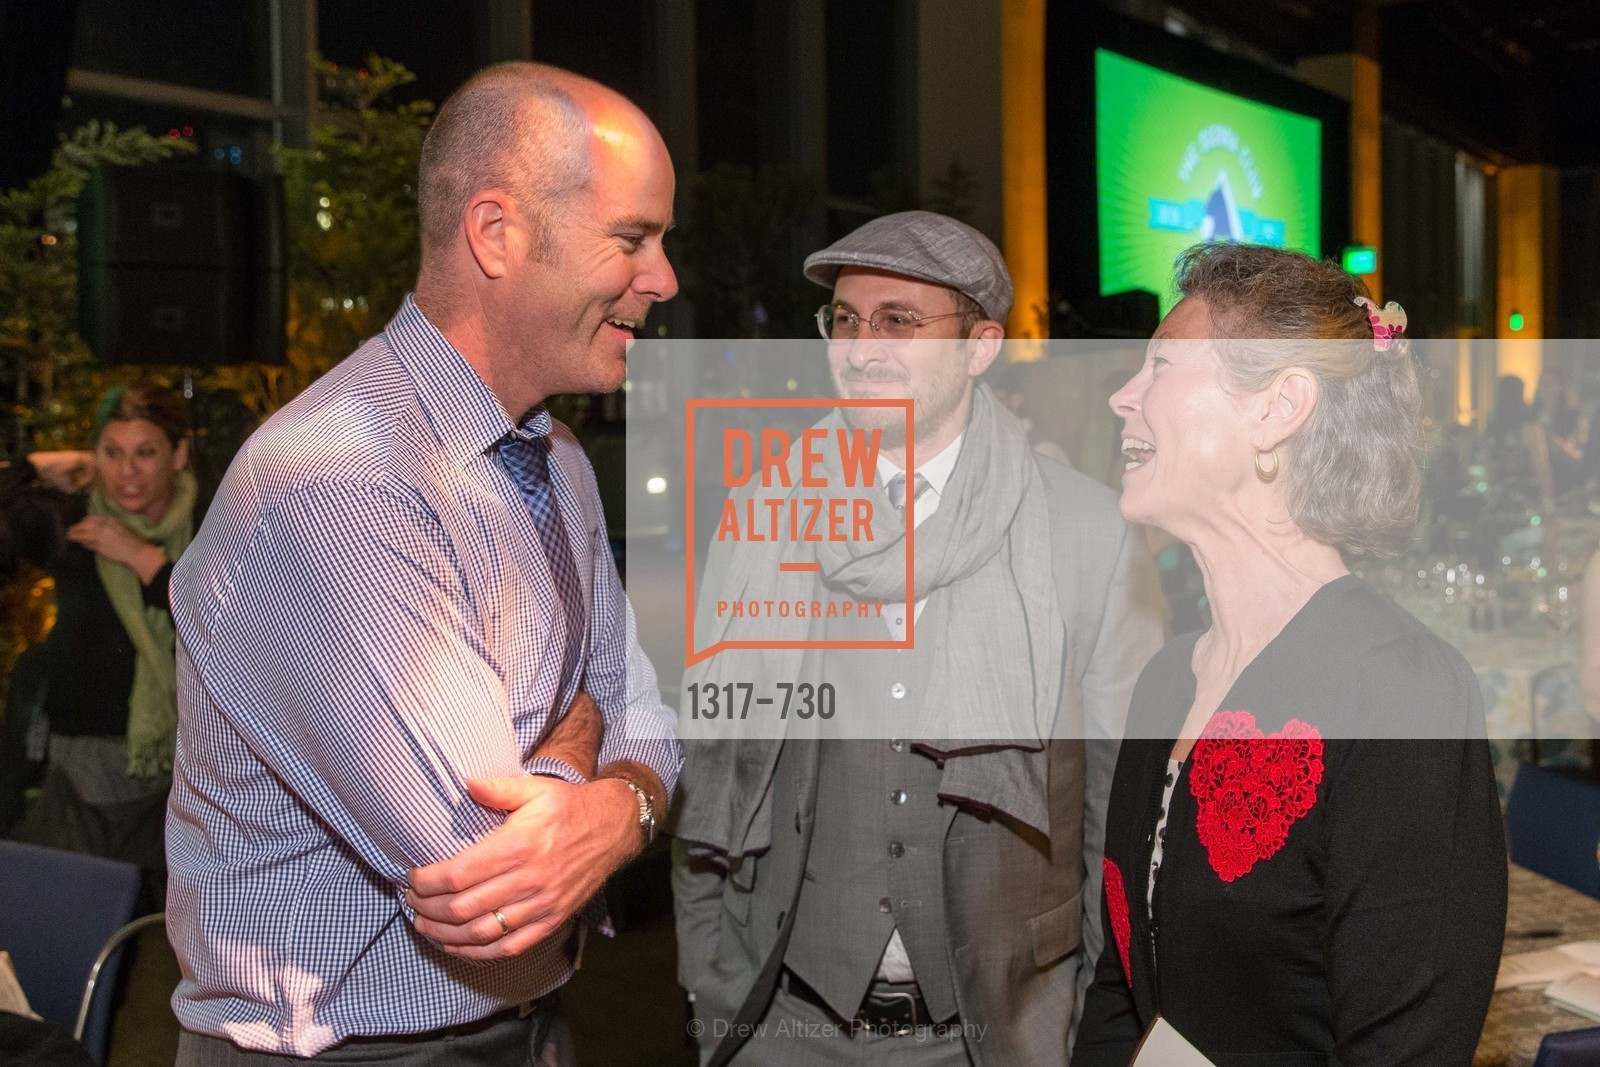 Michael Brune, Darren Aronofsky, Shirley Weese Young, 2015 SIERRA CLUB Trail Blazers Ball, US, May 14th, 2015,Drew Altizer, Drew Altizer Photography, full-service agency, private events, San Francisco photographer, photographer california